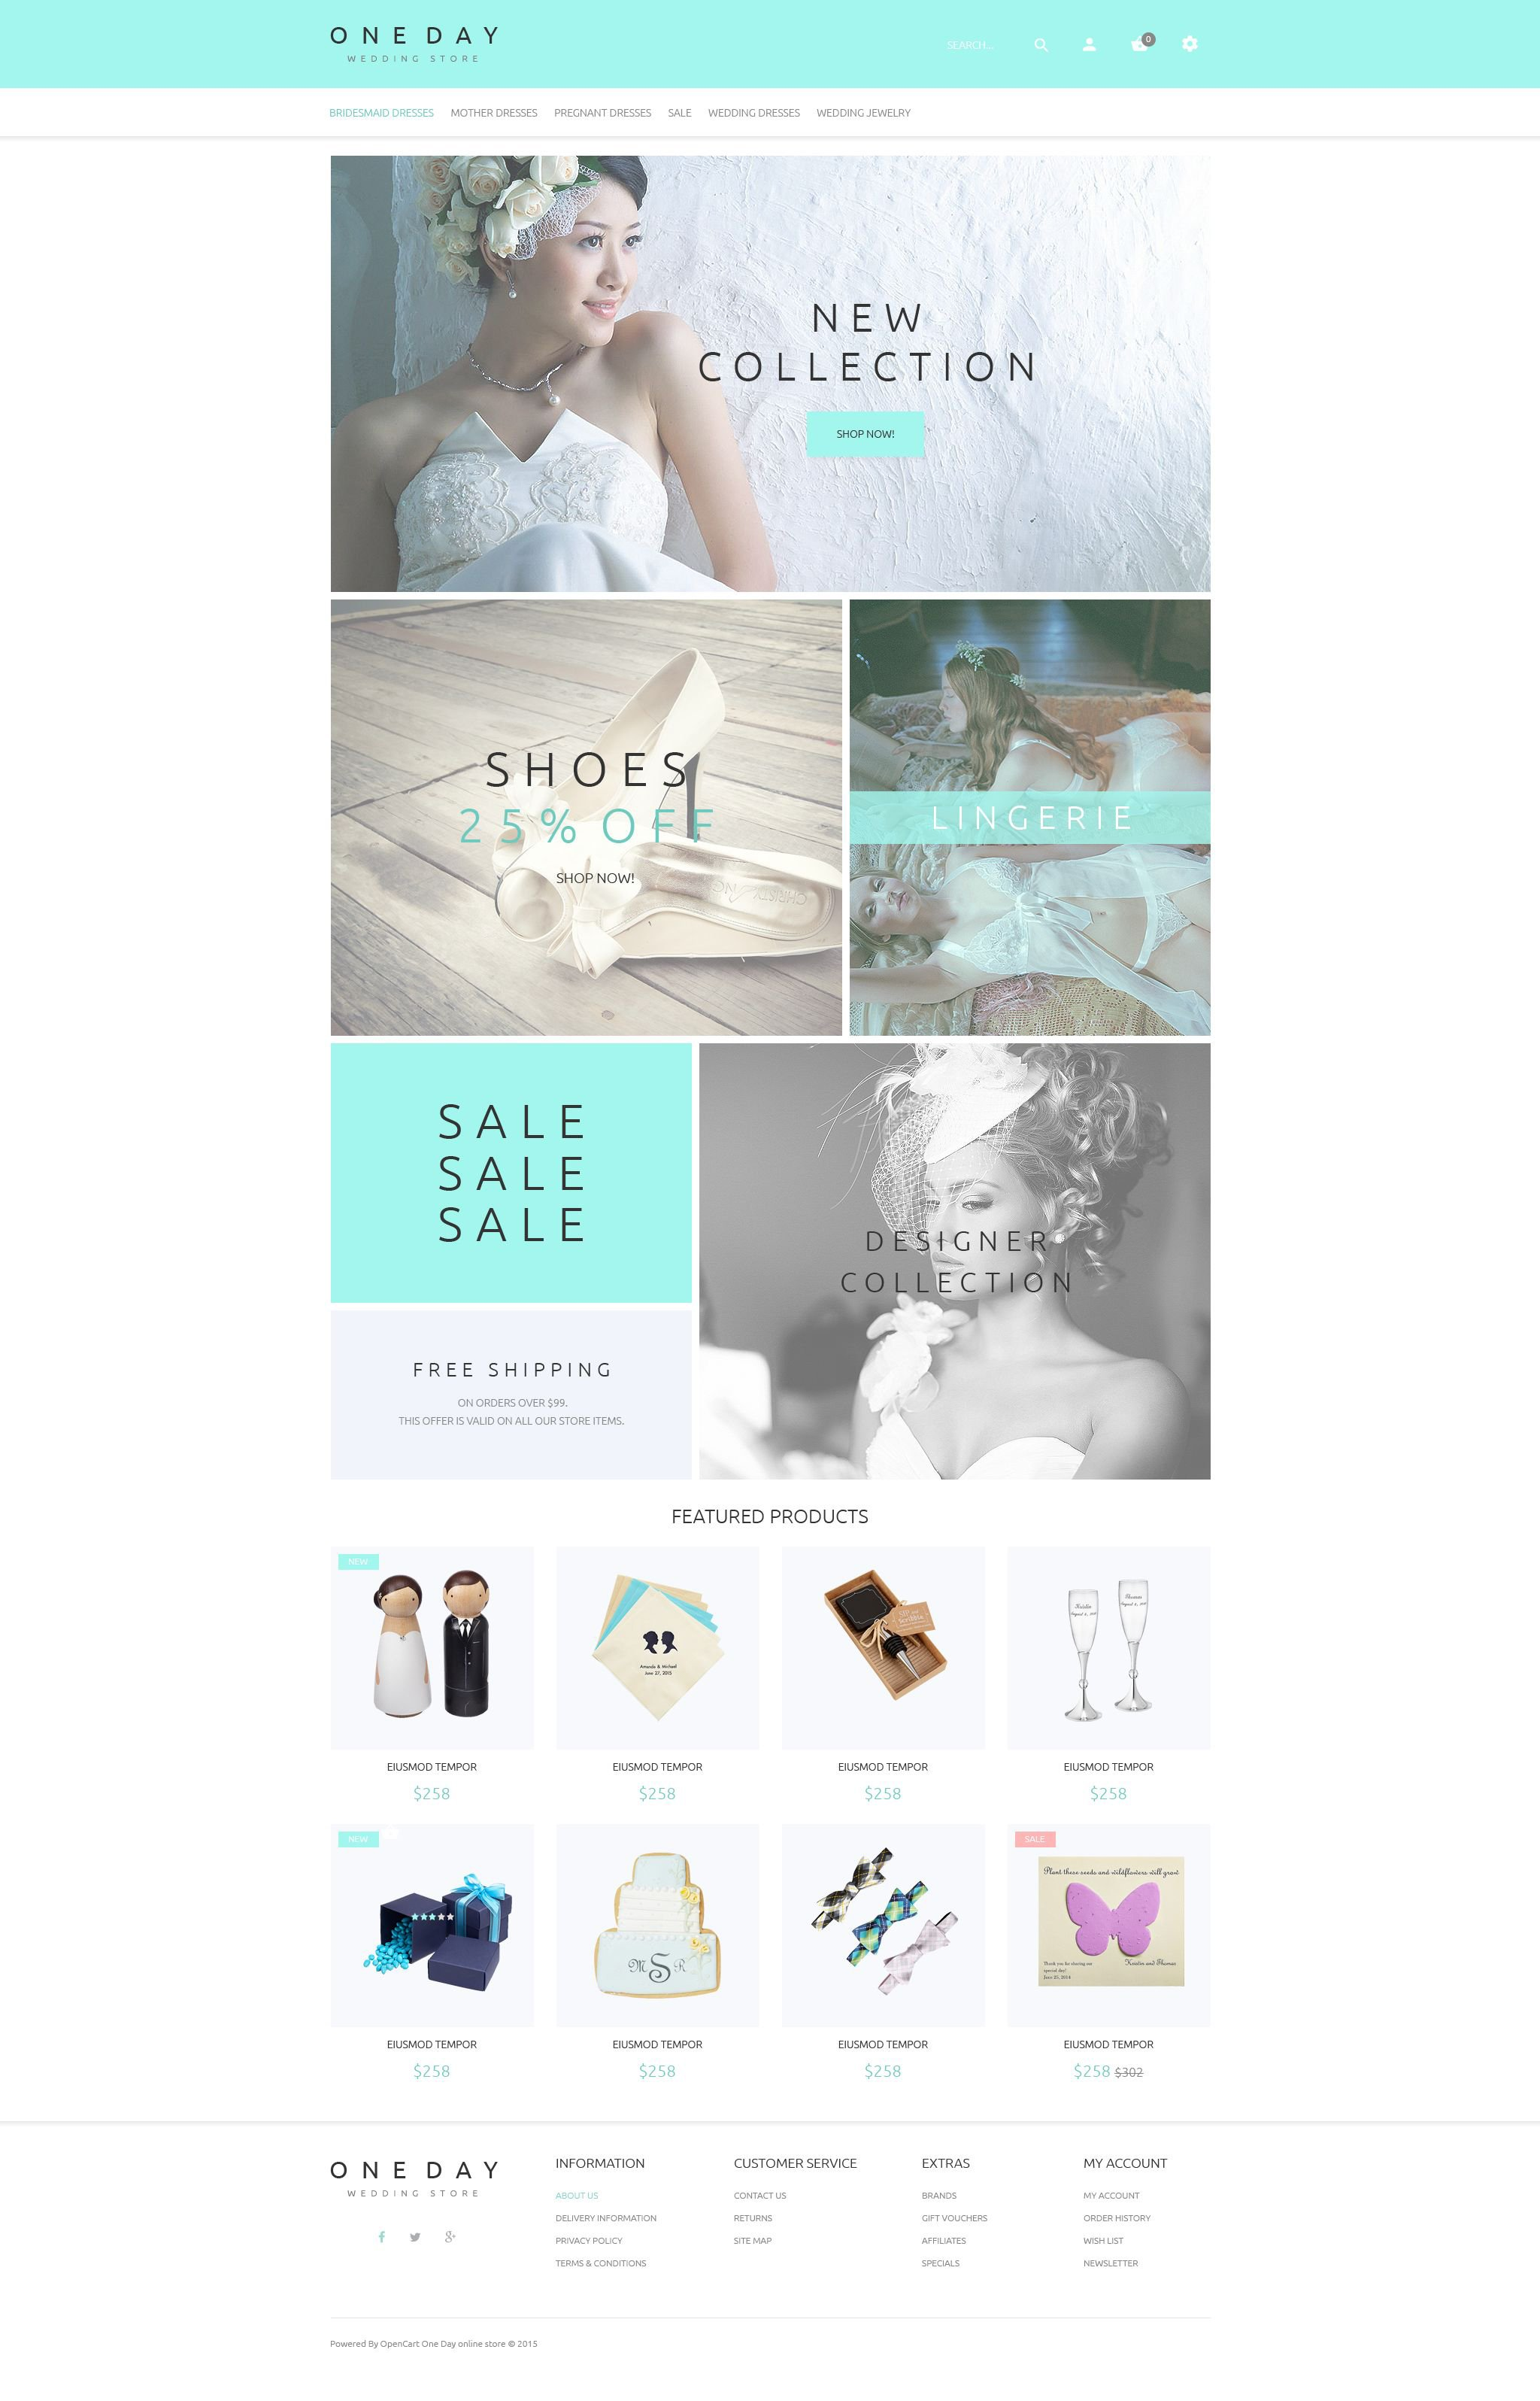 The One Day OpenCart Design 53913, one of the best OpenCart templates of its kind (wedding, most popular), also known as one day OpenCart template, wedding online store OpenCart template, reception OpenCart template, bridal OpenCart template, ceremony OpenCart template, gifts OpenCart template, jewel OpenCart template, specials OpenCart template, offers OpenCart template, rings OpenCart template, flowers OpenCart template, bouquet designers OpenCart template, candles OpenCart template, glasses OpenCart template, decoration OpenCart template, style OpenCart template, accessories OpenCart template, crown OpenCart template, tiara OpenCart template, gown OpenCart template, veil OpenCart template, dress OpenCart template, collection OpenCart template, couple OpenCart template, fiancee OpenCart template, marriage OpenCart template, bridegroom OpenCart template, husband OpenCart template, wife OpenCart template, match and related with one day, wedding online store, reception, bridal, ceremony, gifts, jewel, specials, offers, rings, flowers, bouquet designers, candles, glasses, decoration, style, accessories, crown, tiara, gown, veil, dress, collection, couple, fiancee, marriage, bridegroom, husband, wife, match, etc.